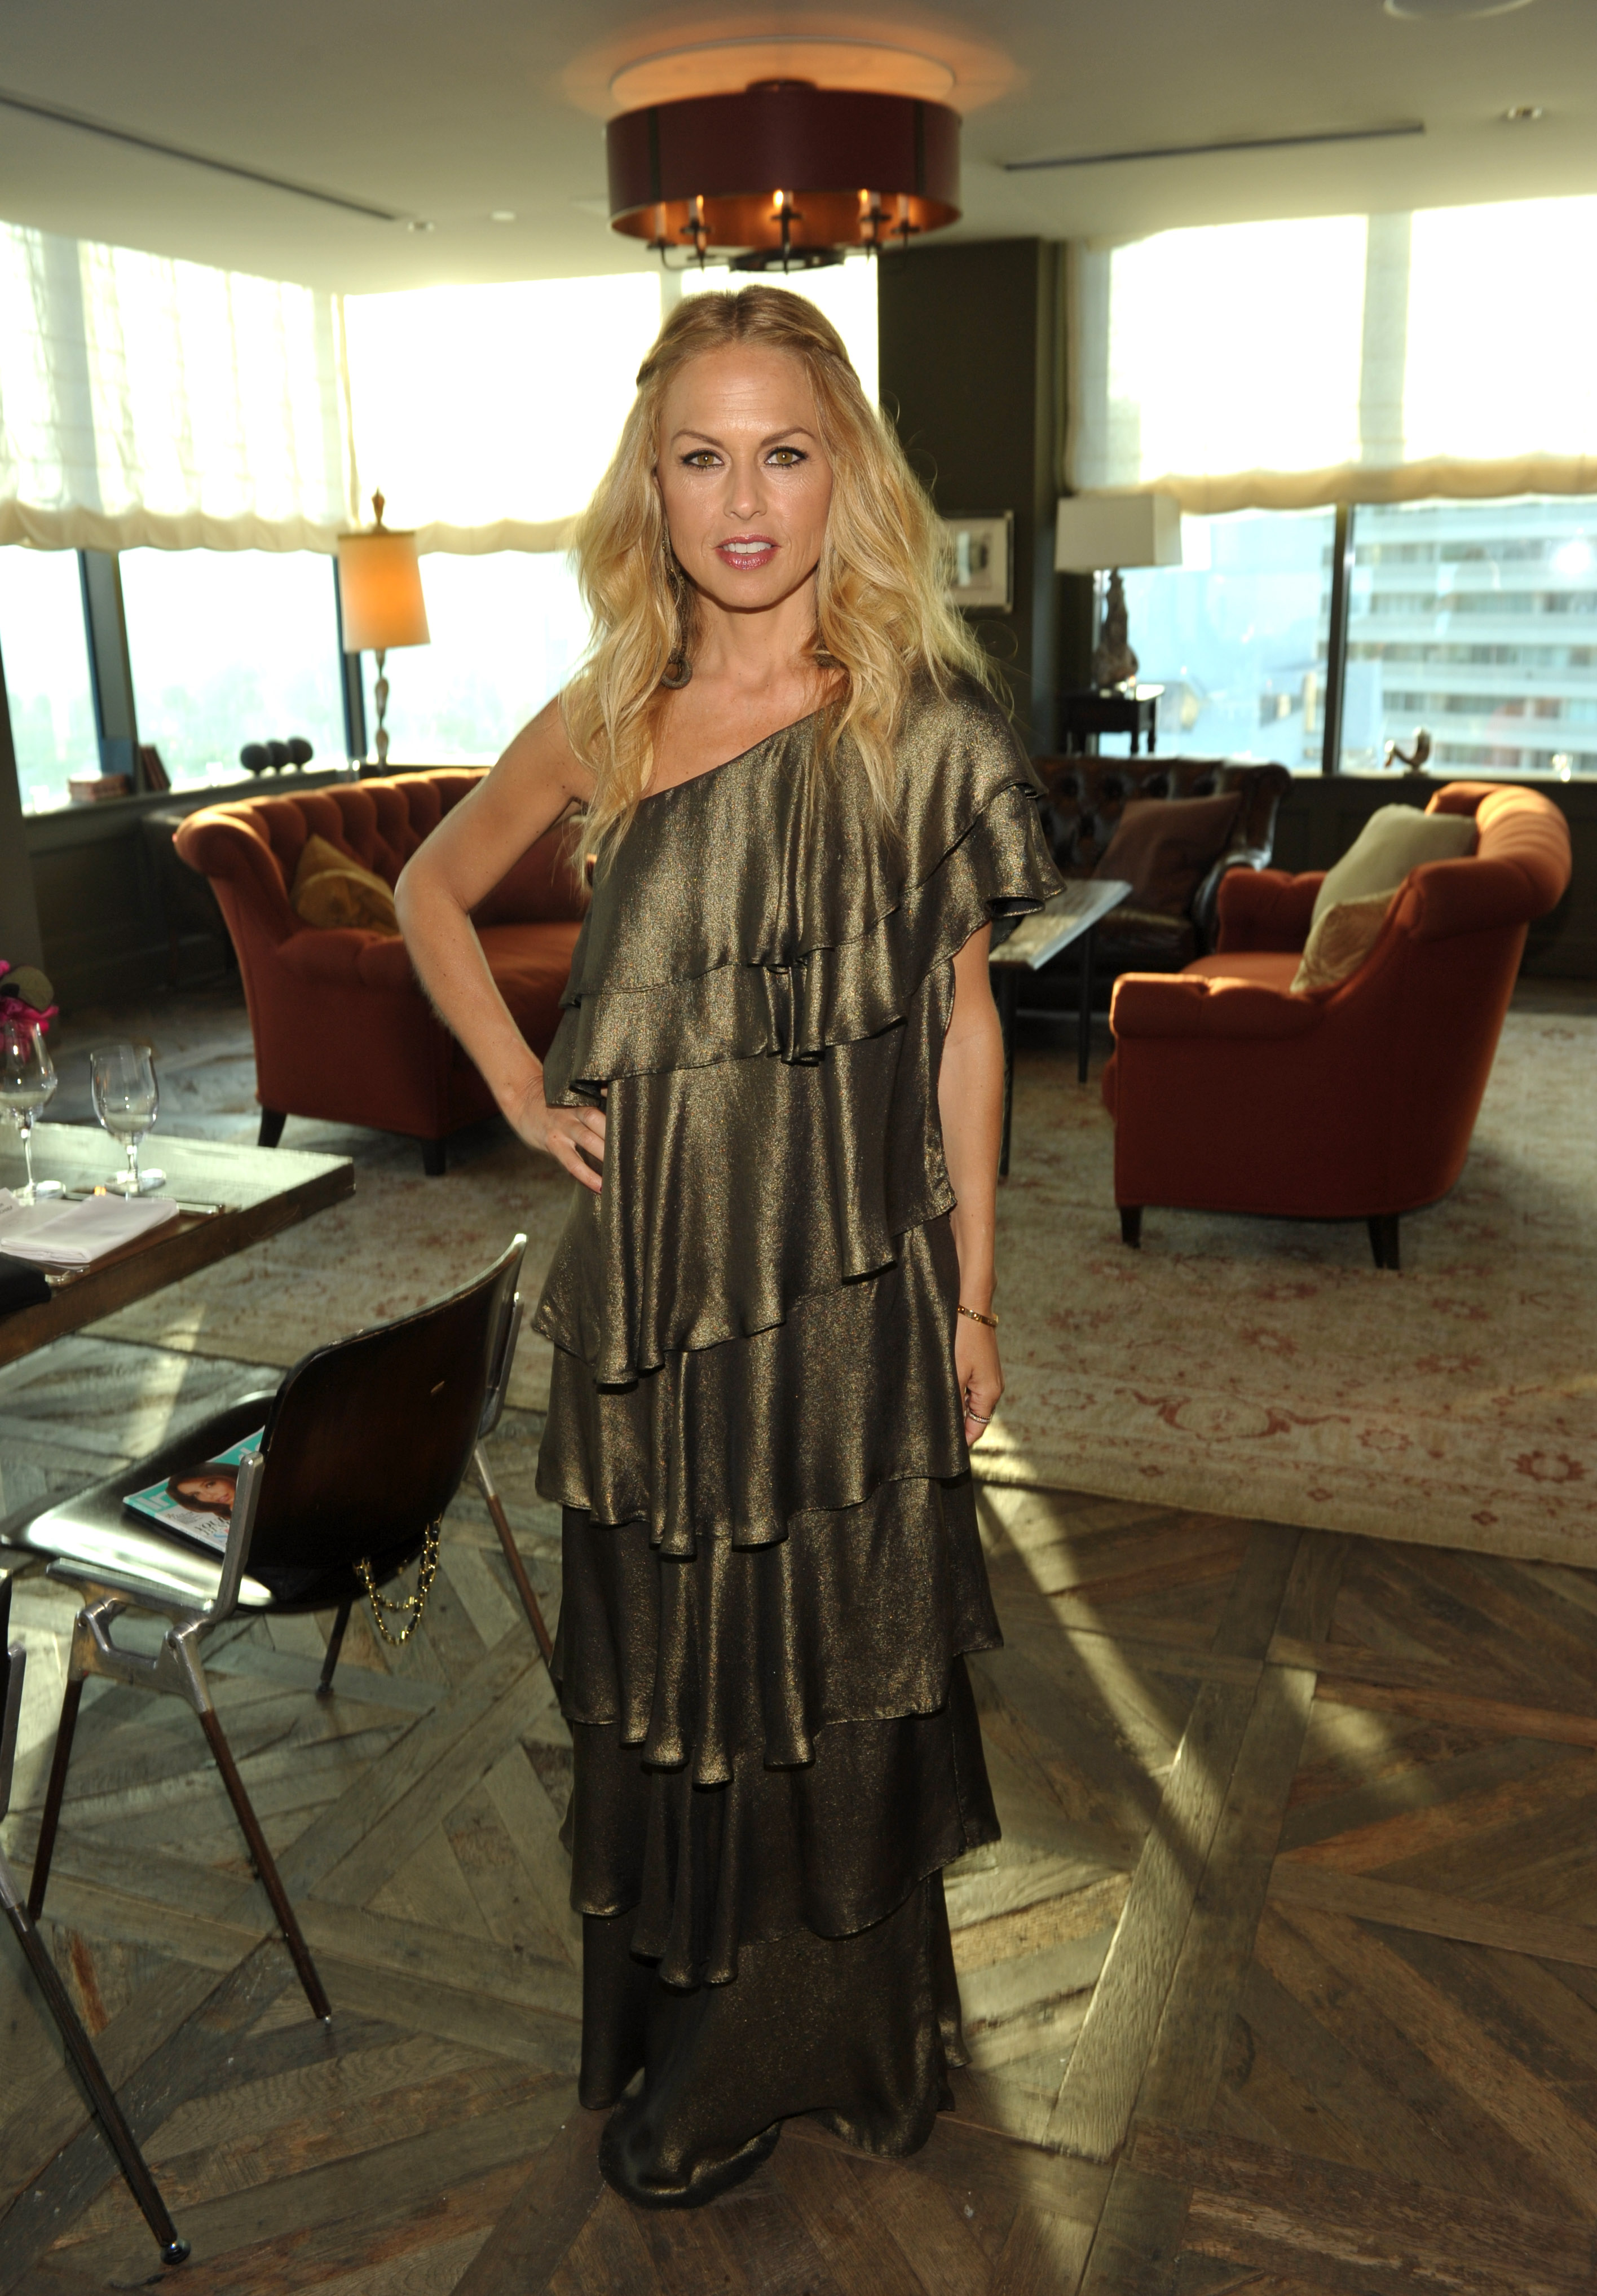 Rachel Zoe attended a party for her line at LA's Soho House.